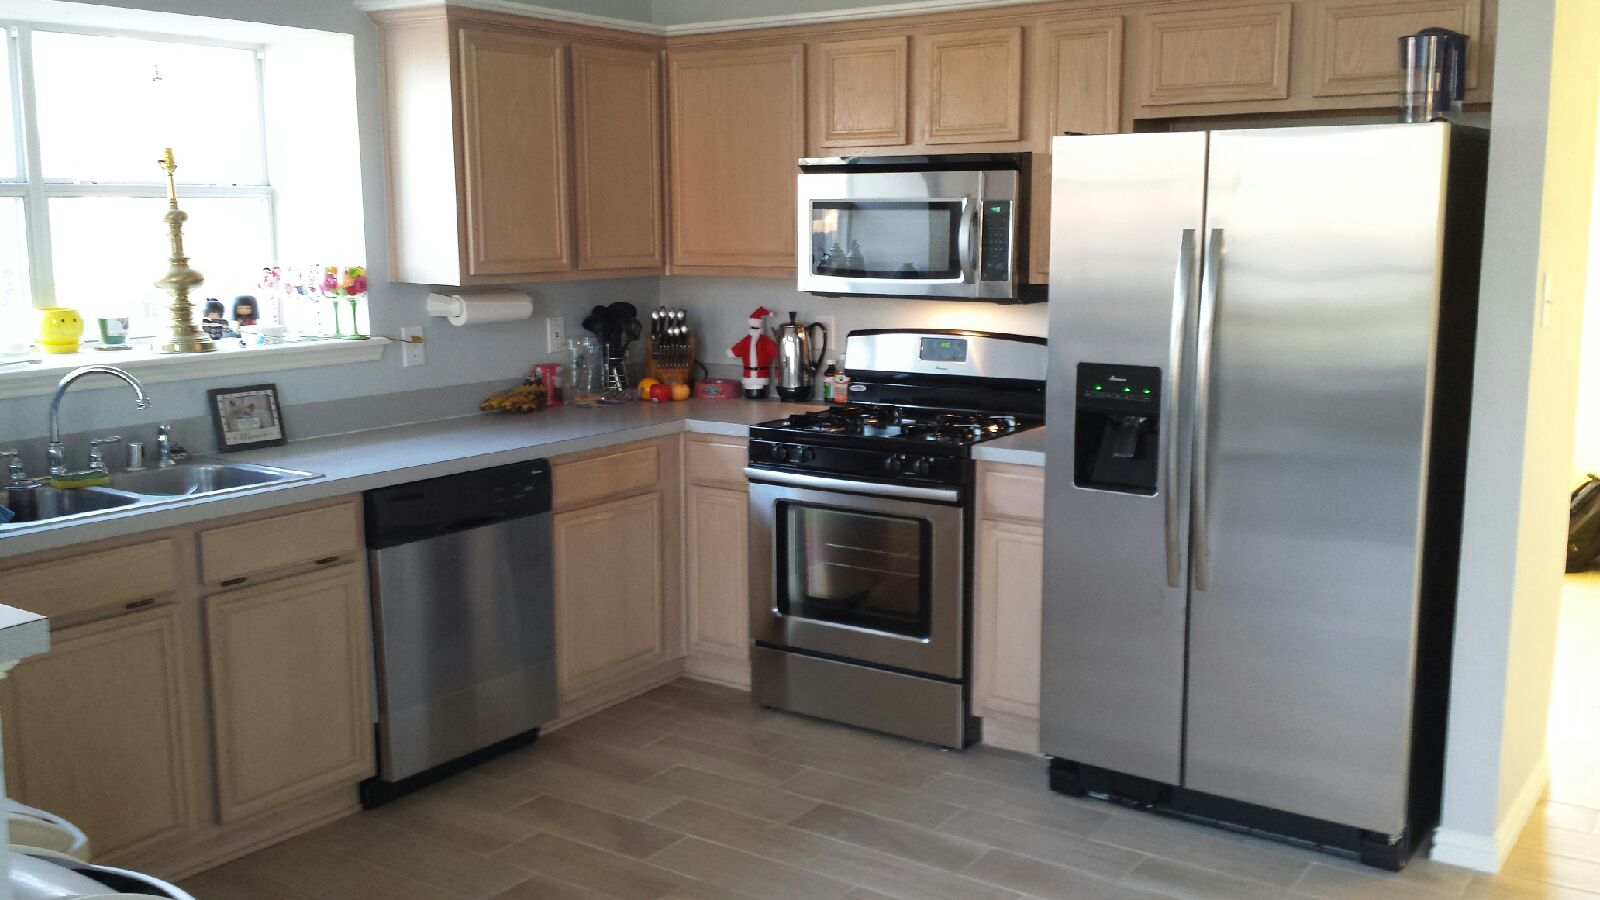 new kitchen appliances how to make cabinet doors jessetters